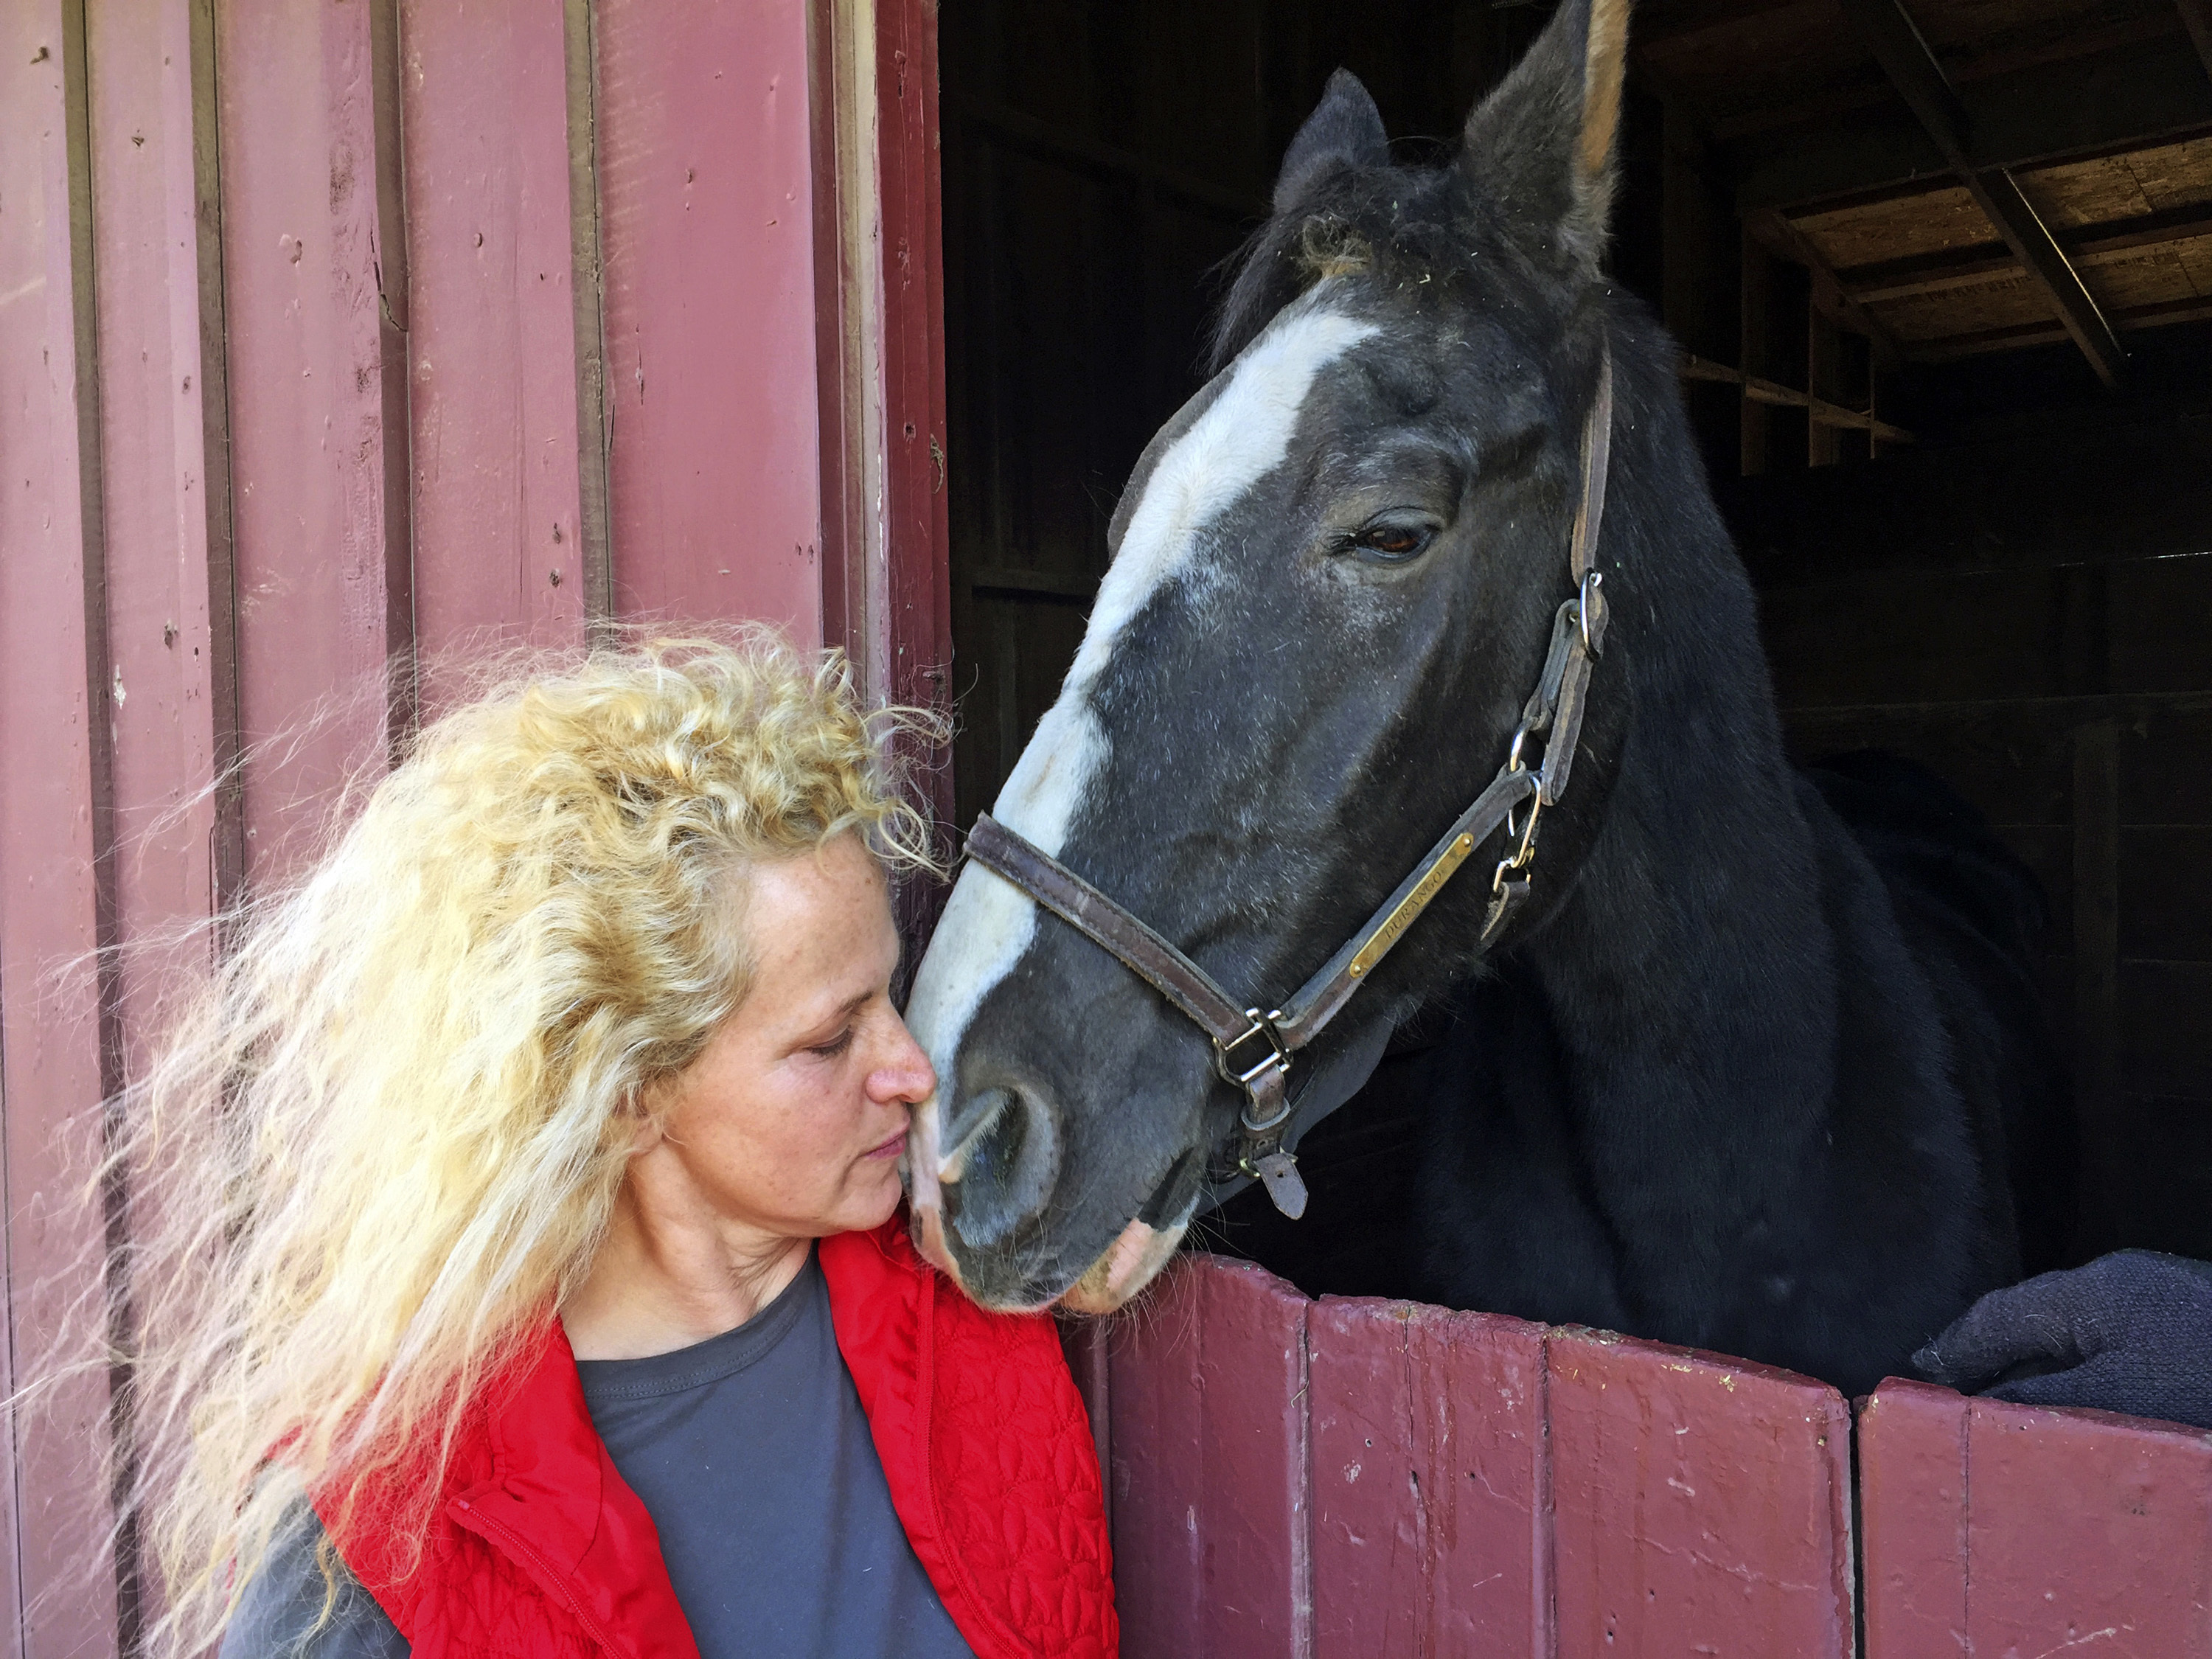 <div class='meta'><div class='origin-logo' data-origin='none'></div><span class='caption-text' data-credit='Amanda Lee Myers/AP Photo'>Wendy Frank poses with one of her horses at the Ventura County Fairgrounds evacuation center in Ventura, Calif., Thursday, Dec. 7, 2017.</span></div>